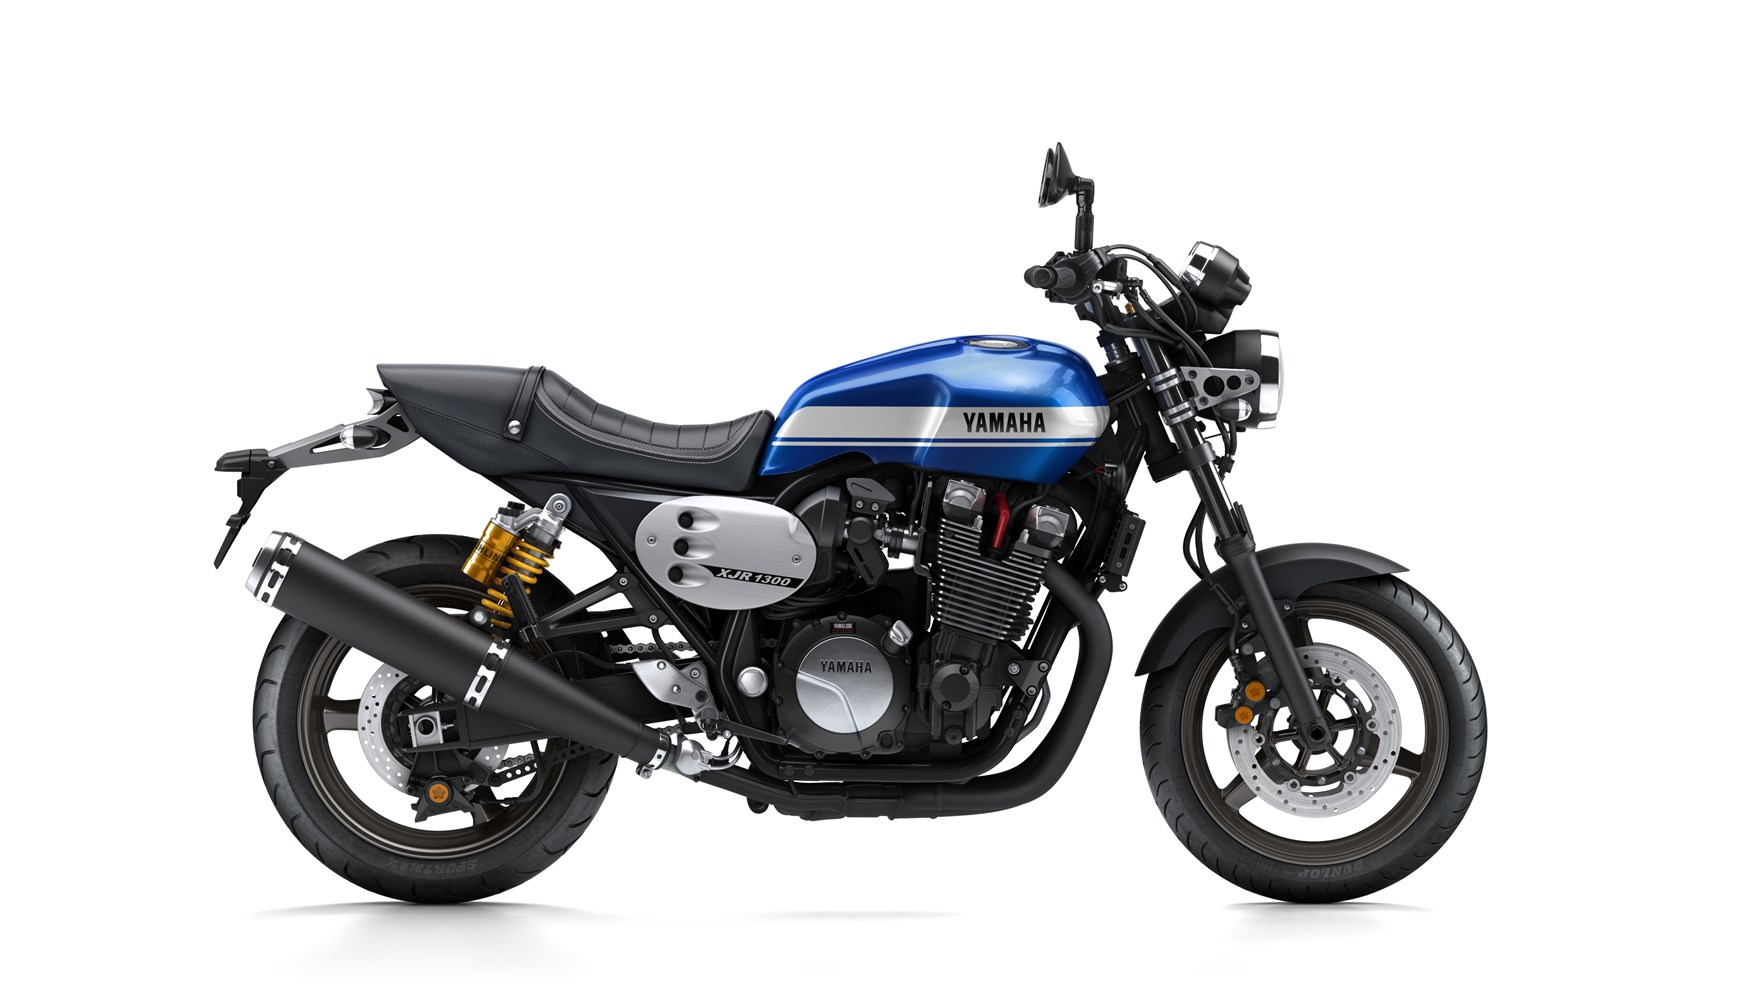 Yamaha XJR 400 R 2005 images #91285